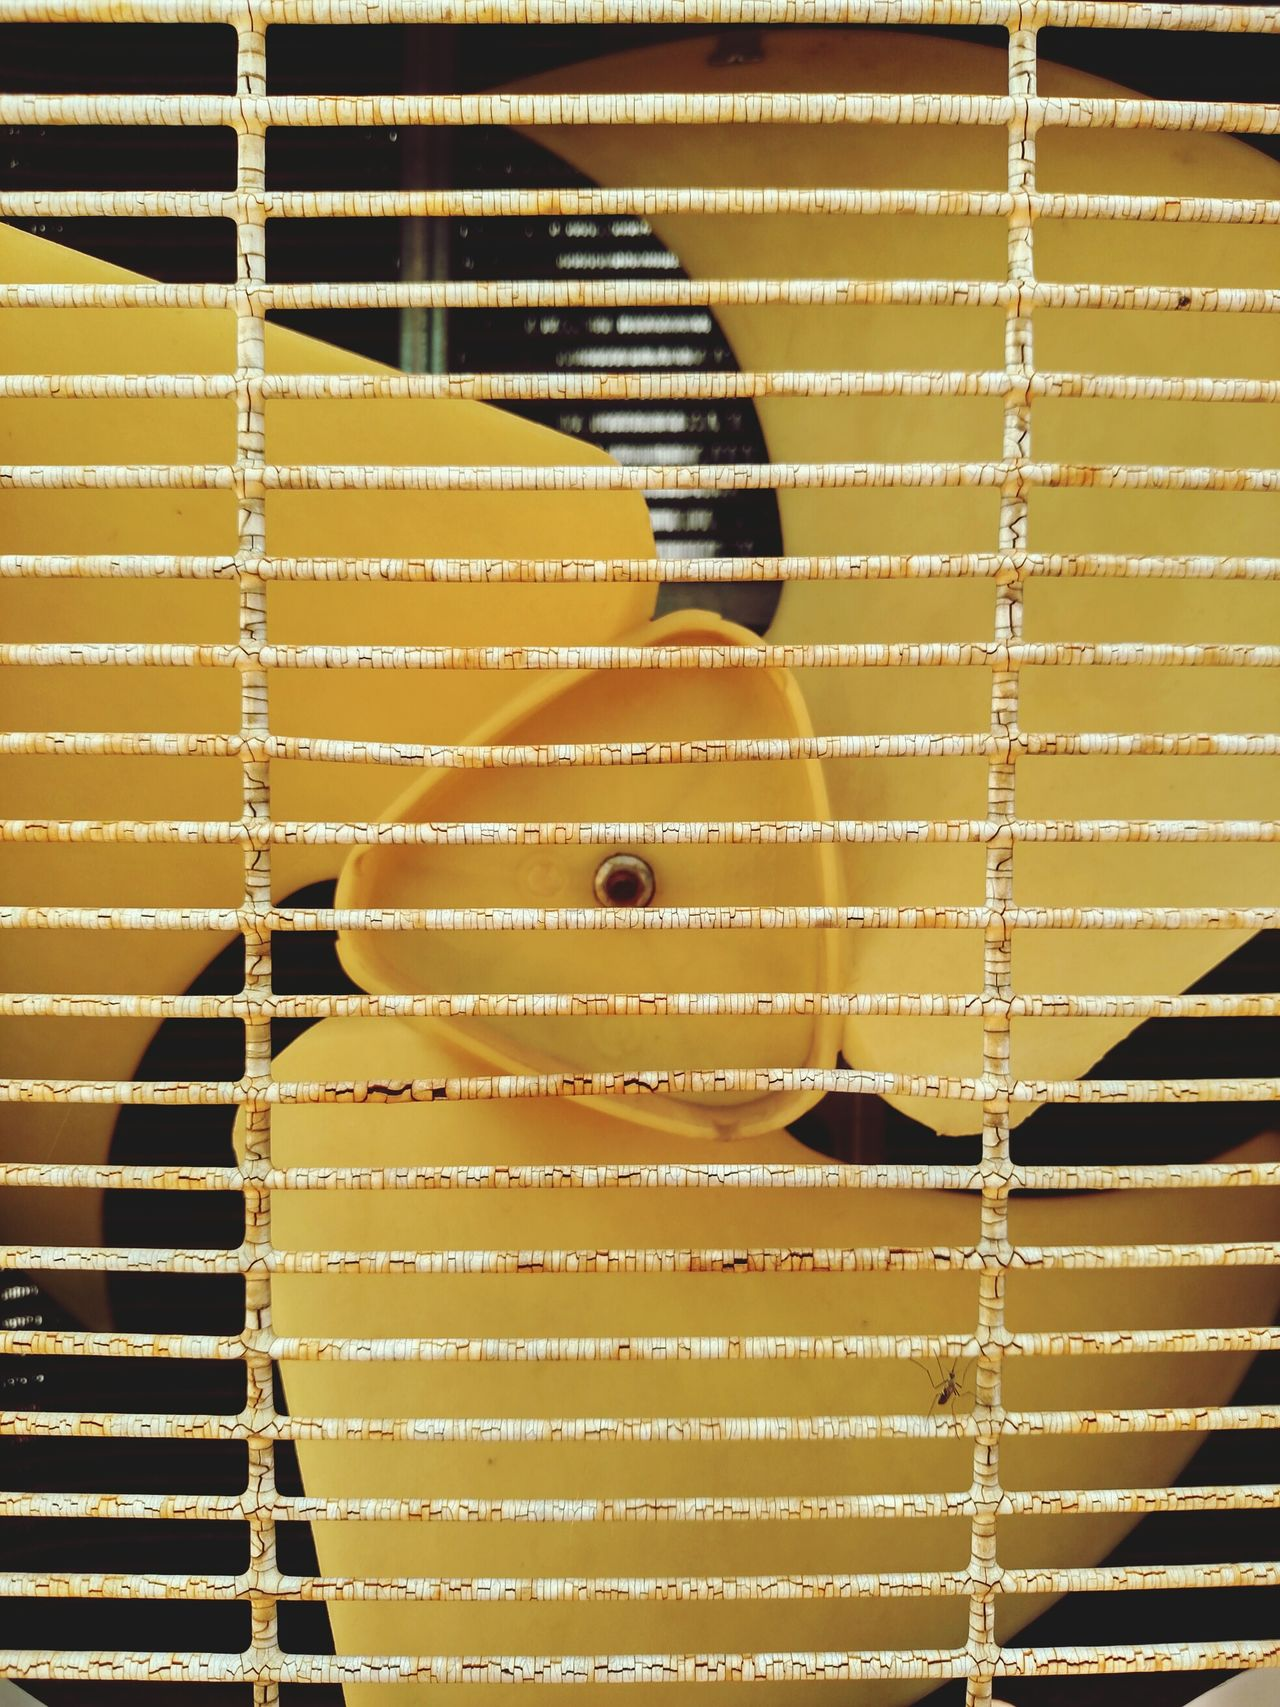 Metal Technology Close-up Close Up Technology Technology Photography Air Conditioner Compressor Unit Compressor Fan Rust Rusty Metal Grate Pattern Day No People Outdoors Mobile Photography Motorolaphotography Mosquito Yellow